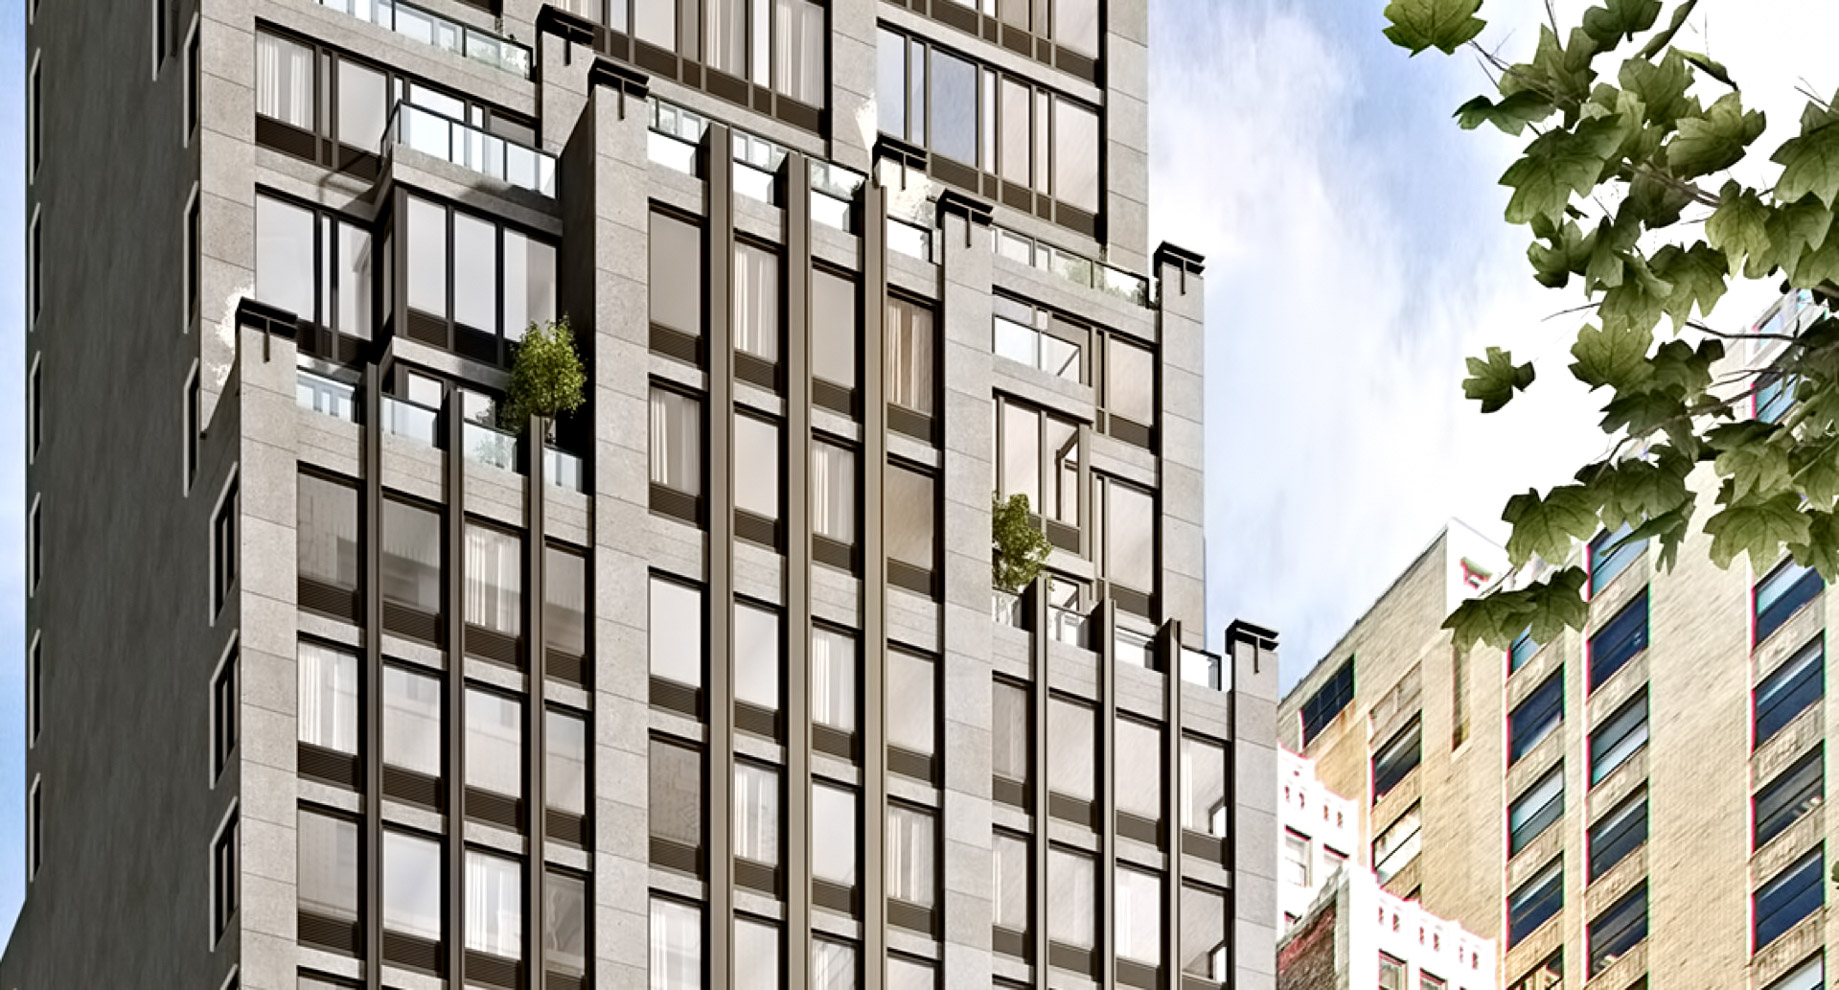 Chelsea 29 - New York City Luxury Market in 2018 - 5 Premier New Residential Developments